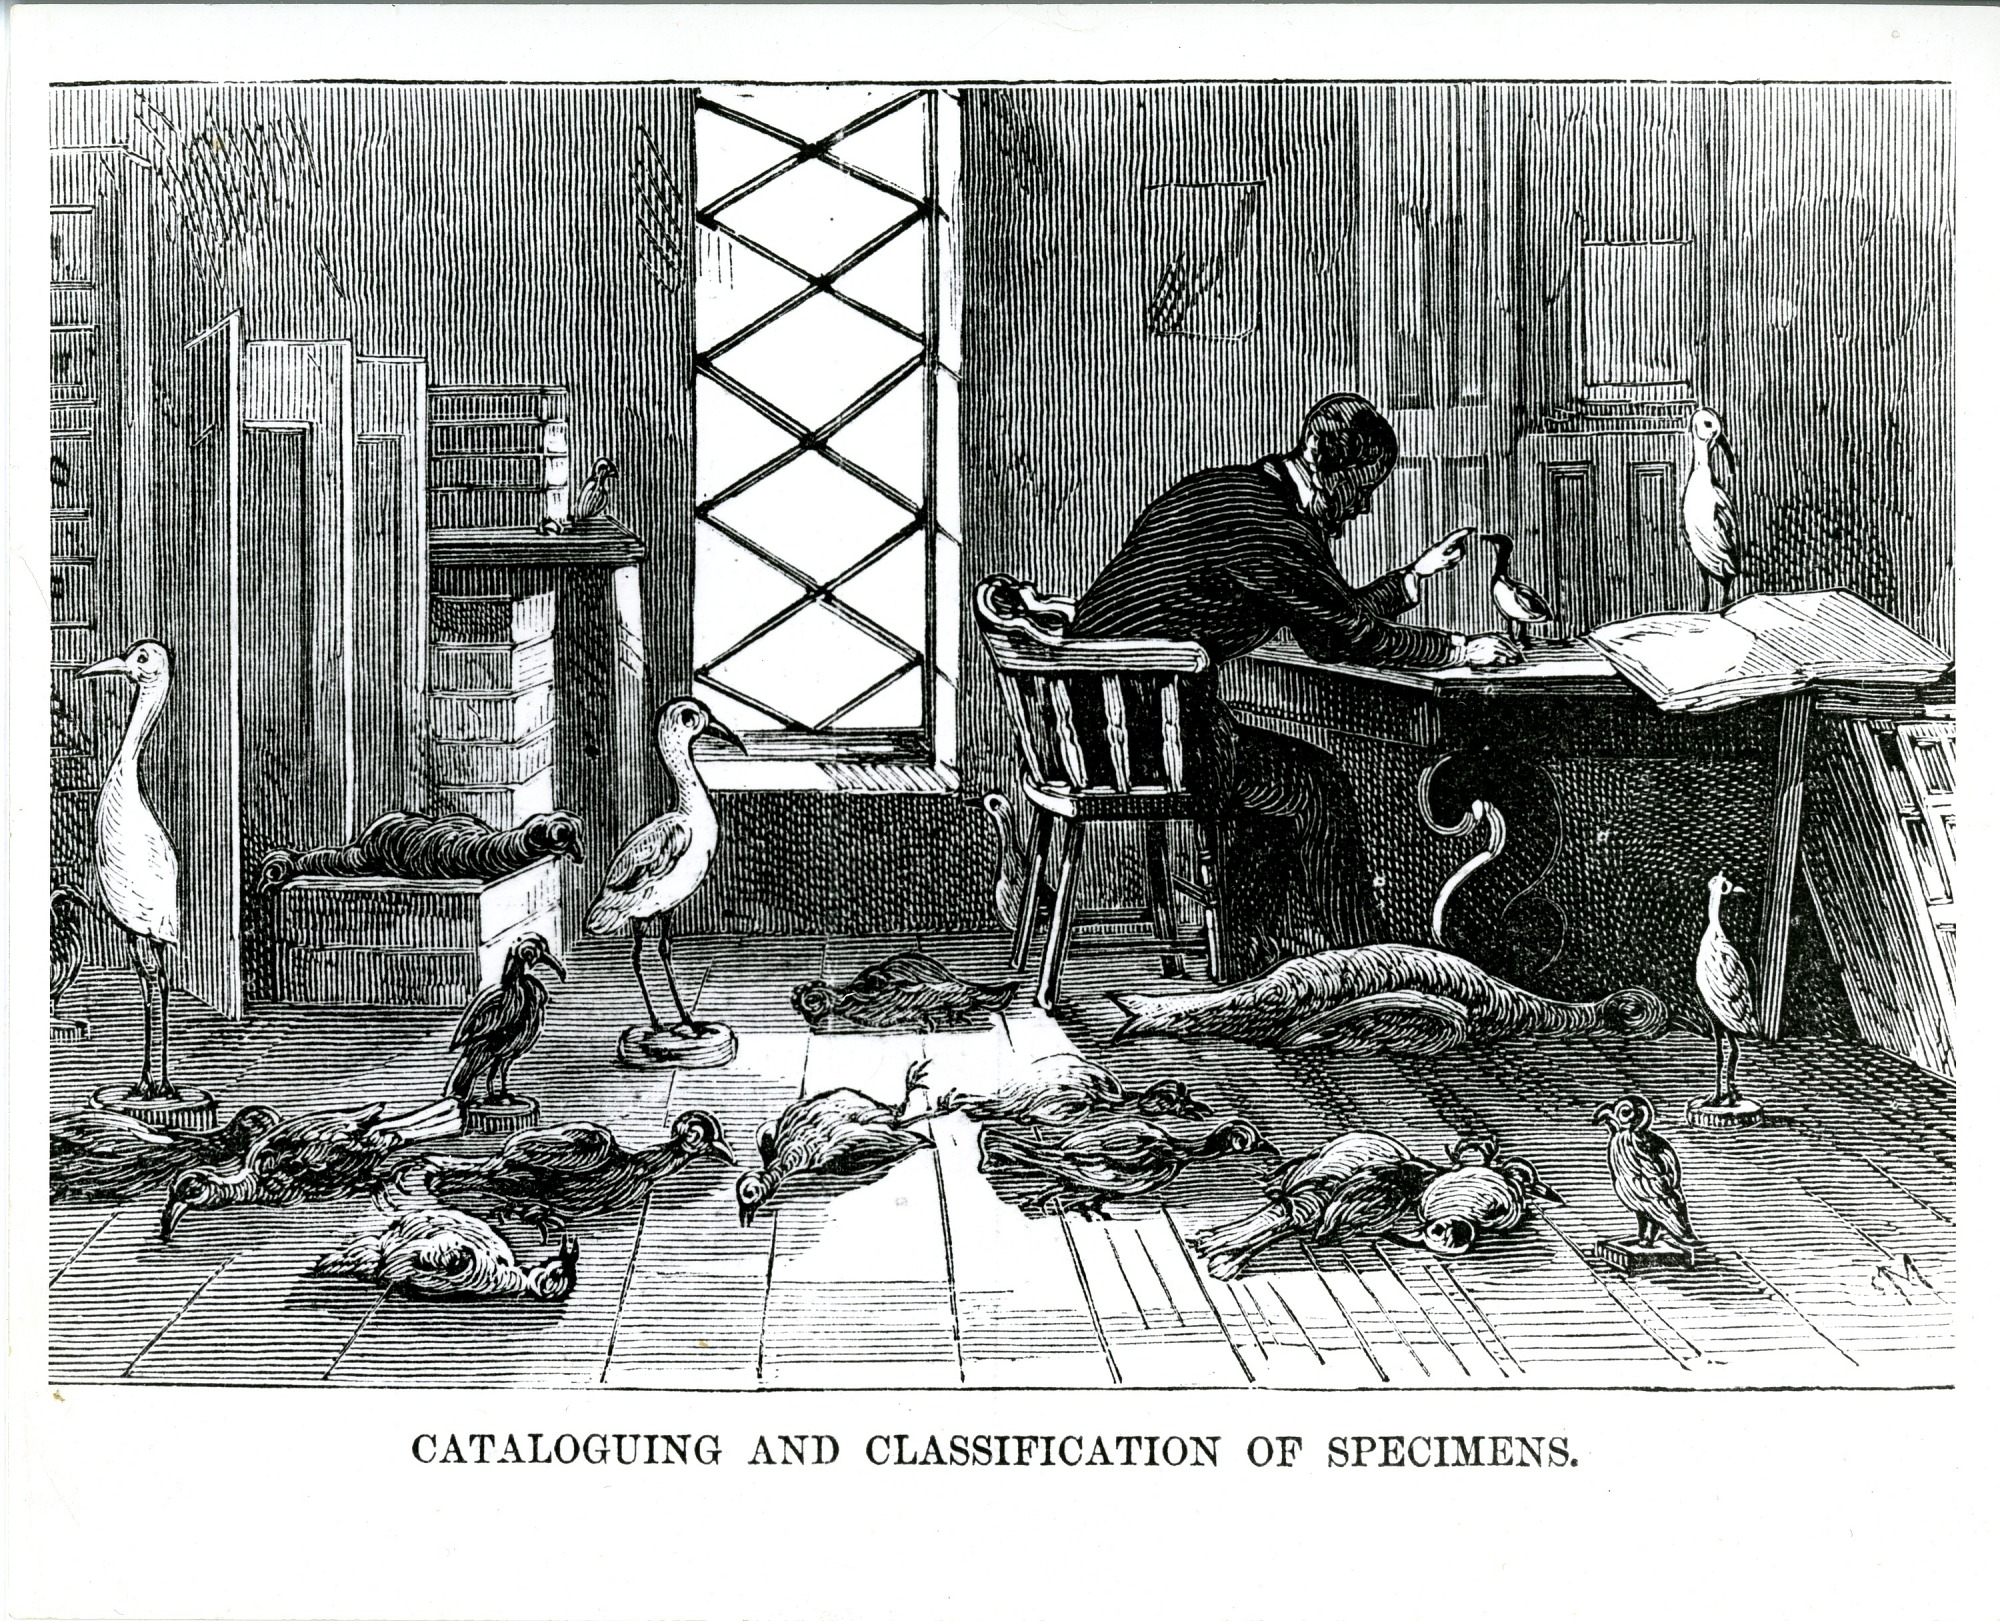 Ornithologist Cataloging Specimens, Natural History Laboratory, in the Smithsonian Institution Build